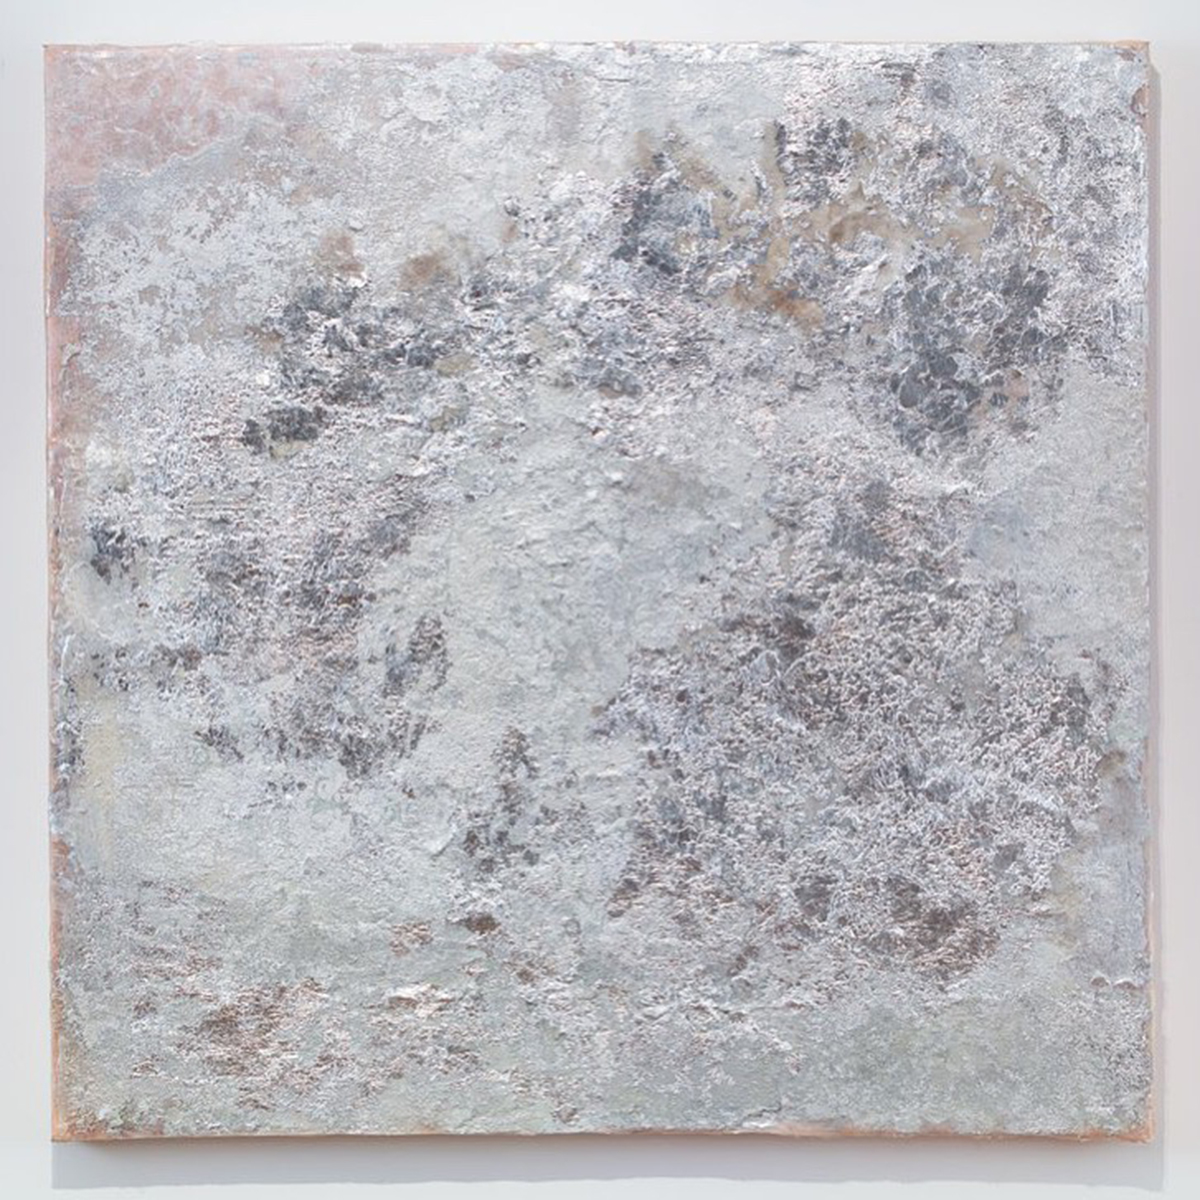 Metallic, textured silver painting by Rosalind Tallmadge